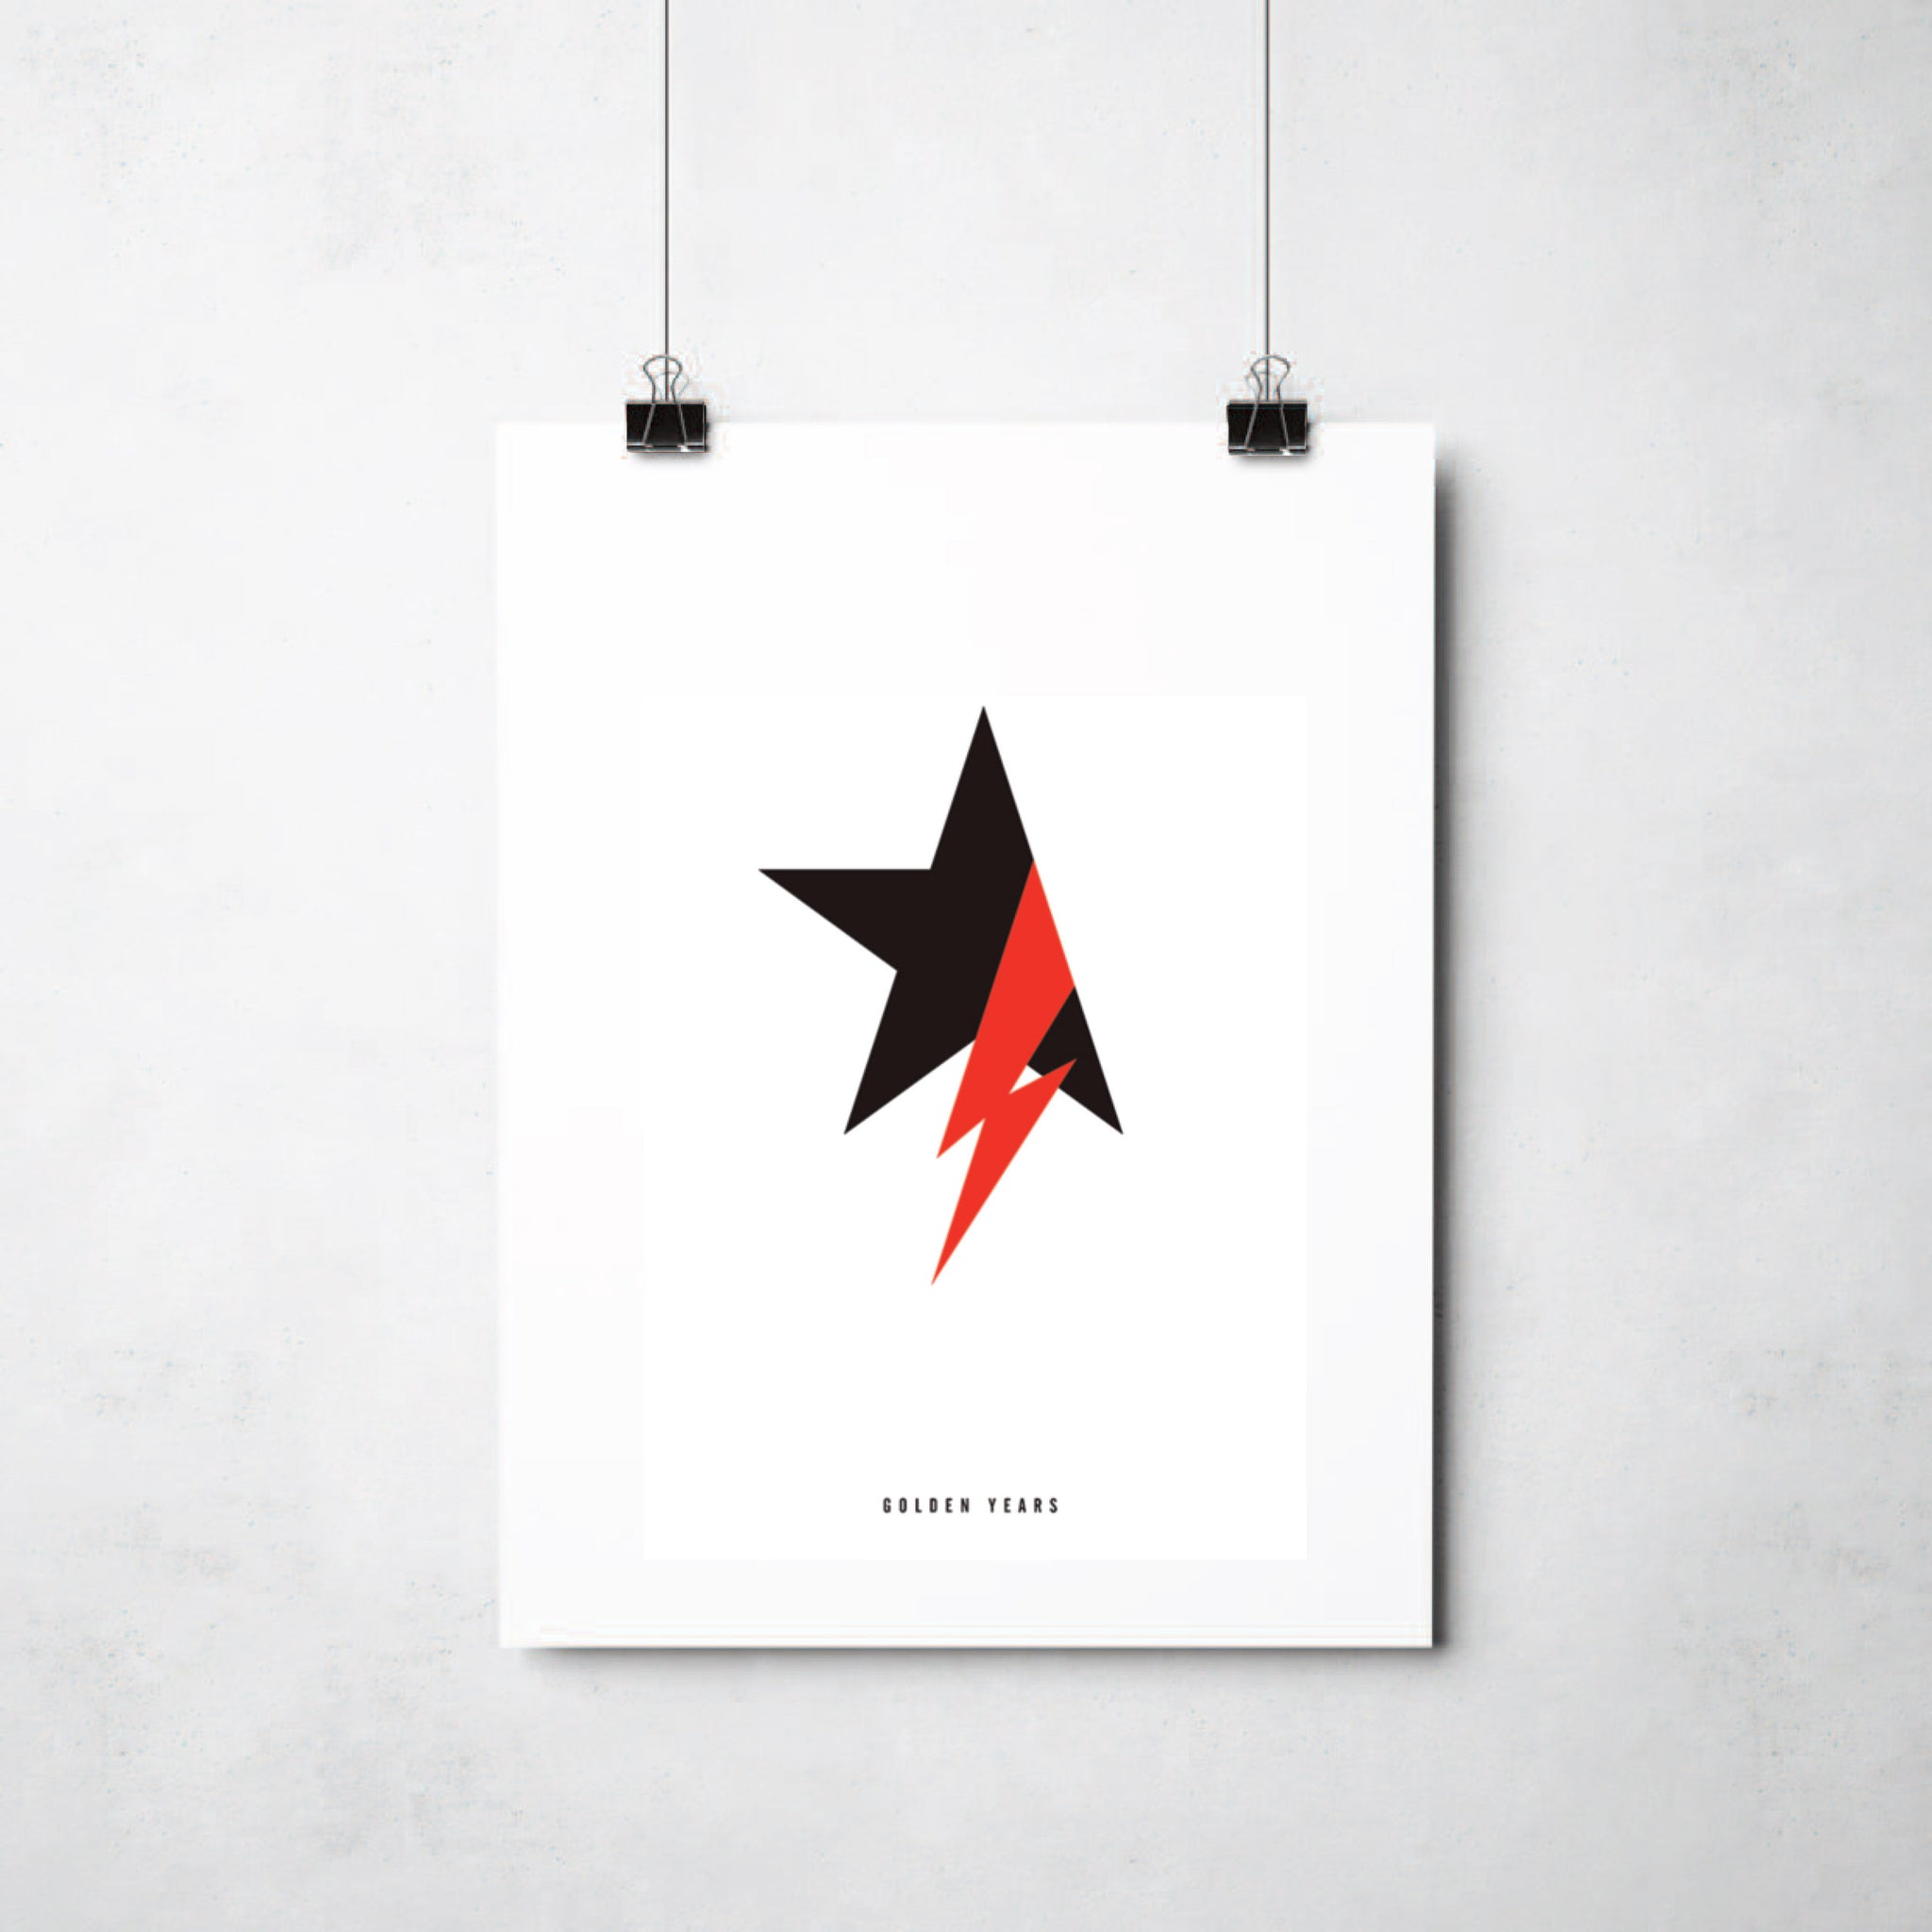 David Bowie print by This Charming Manc